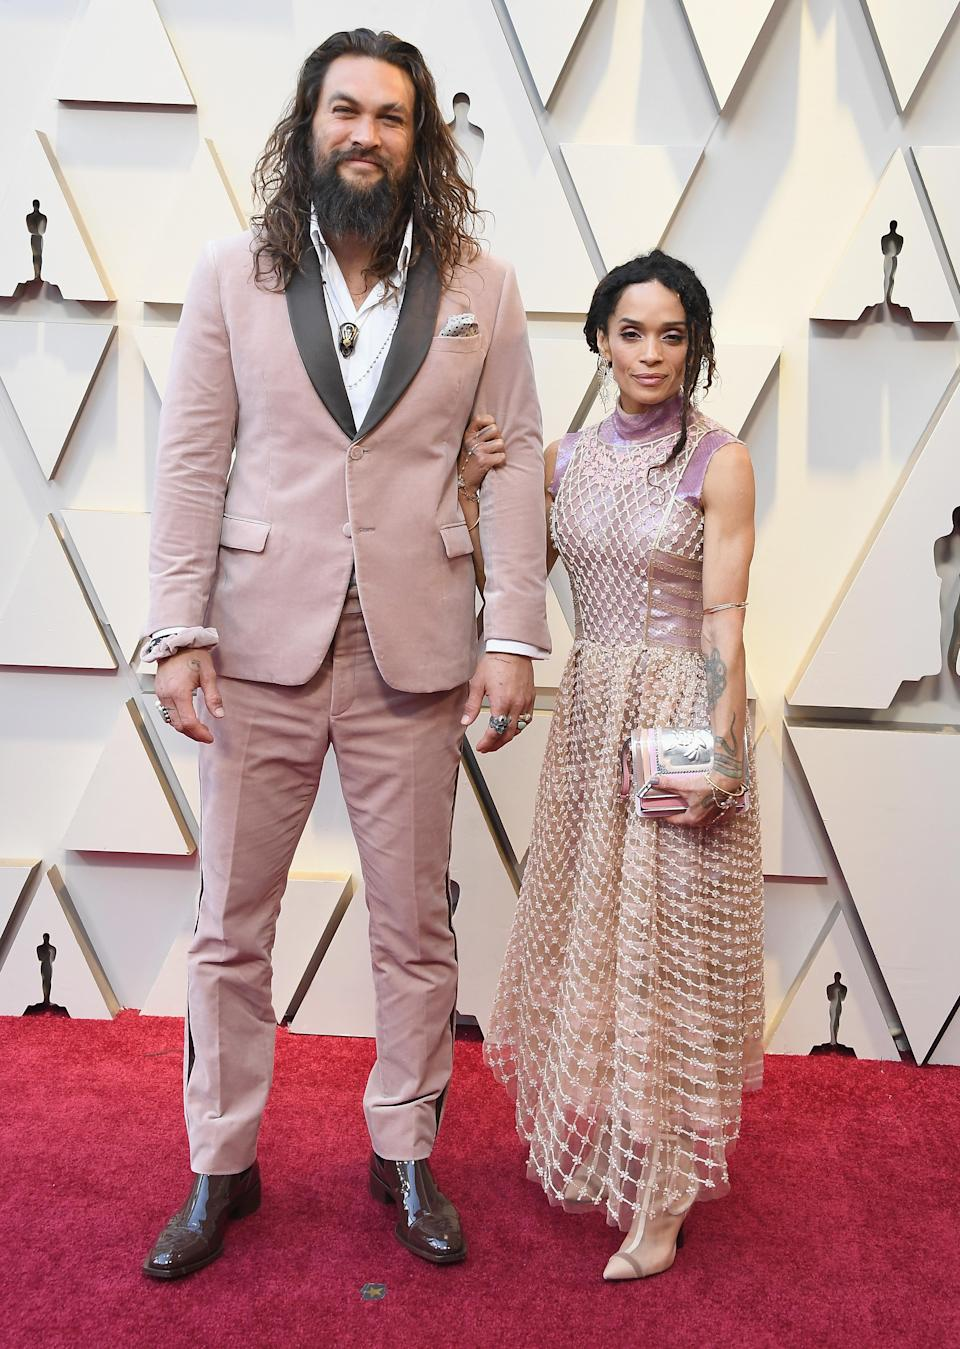 """<p>The """"Aquaman"""" star arrived alongside his wife Lisa Bonet in matching pink ensembles by Fendi. (Image via Getty Images) </p>"""